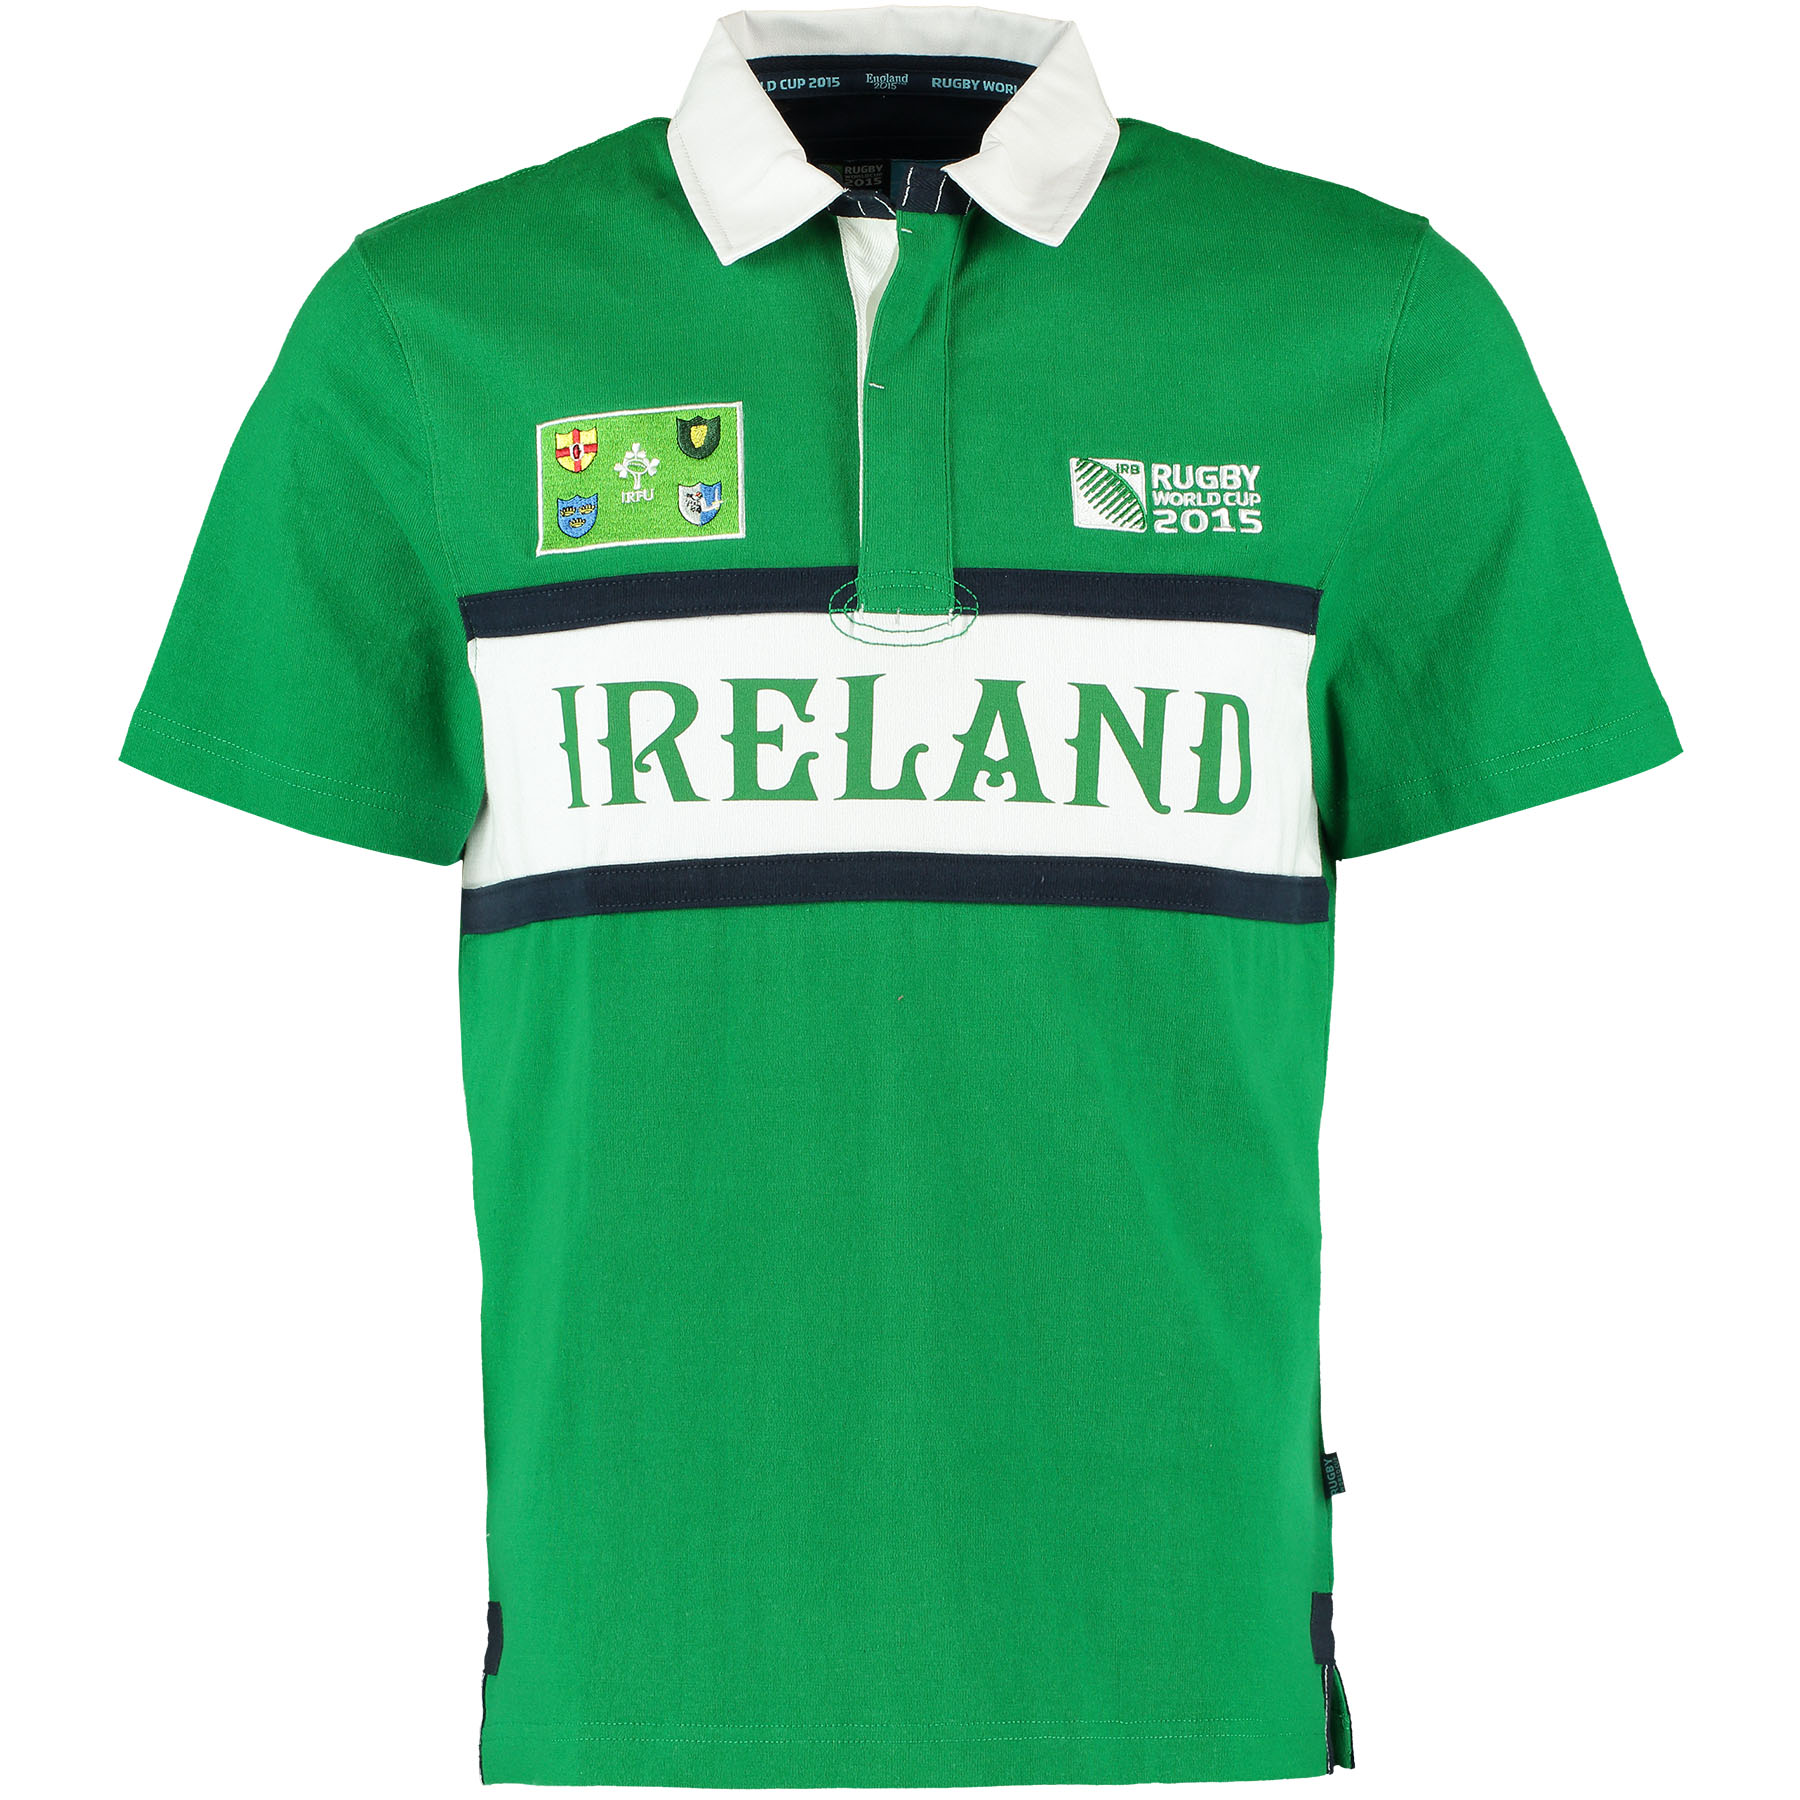 Rugby World Cup 2015 Ireland Rugby Shirt – Short Sleeved Green